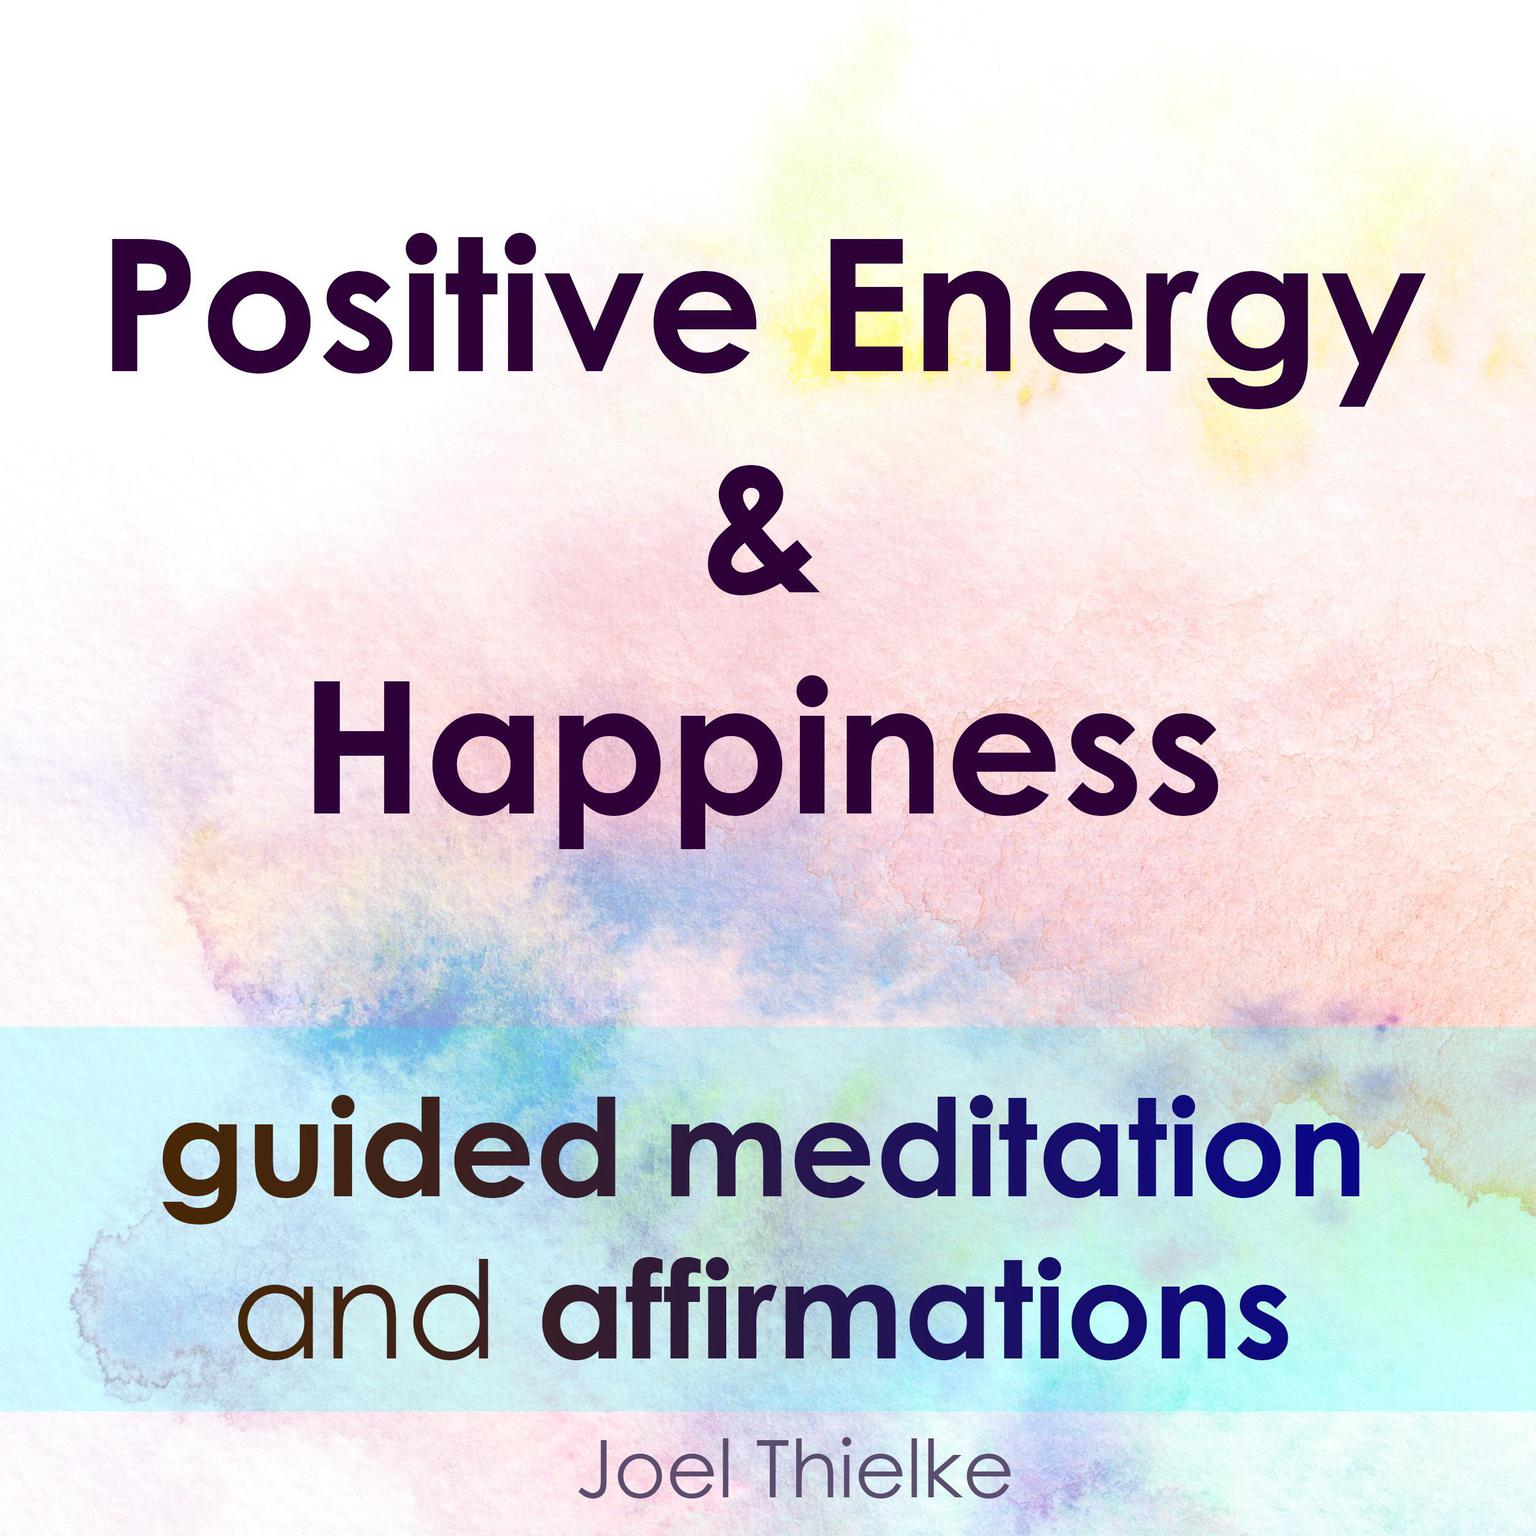 Printable Positive Energy & Happiness—Guided Meditation & Affirmations Audiobook Cover Art